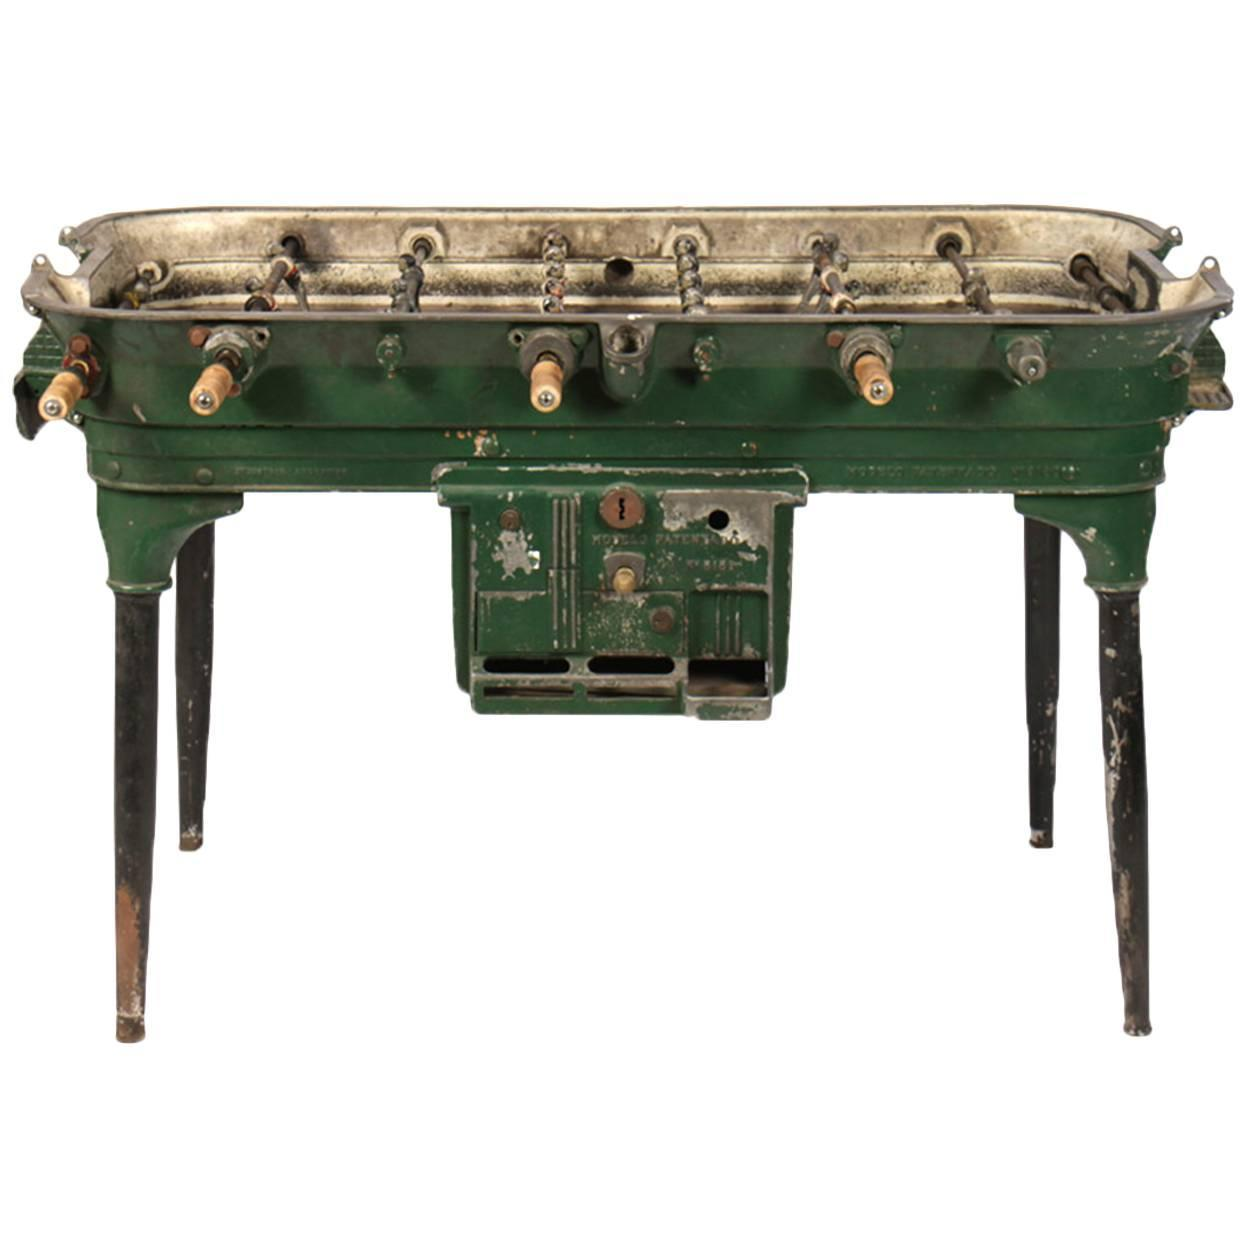 Vintage Cast Metal Foosball Table For Sale At 1stdibs